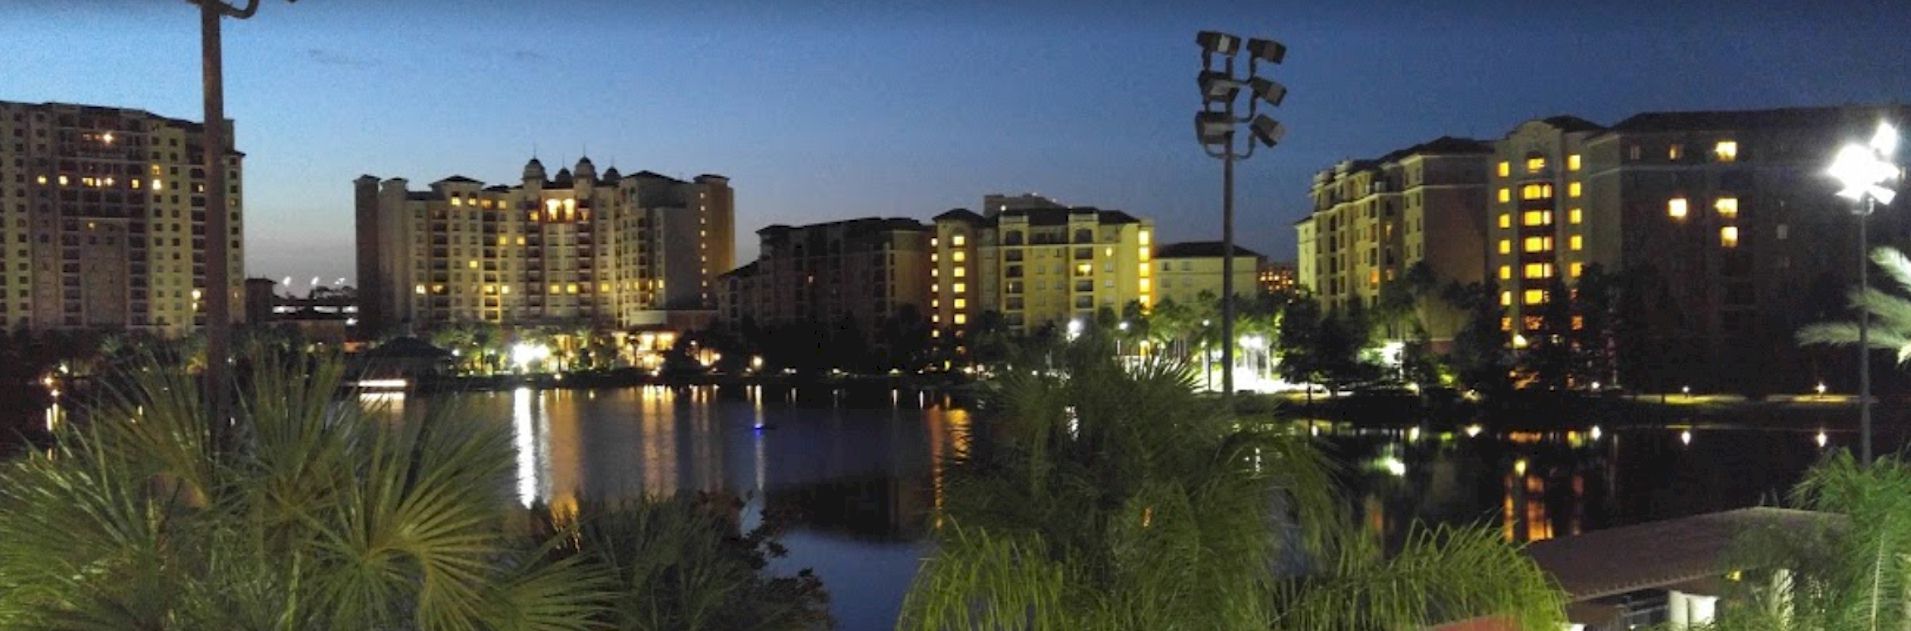 wyndham-bonnet-creek-vacation-resort-rental-bg6